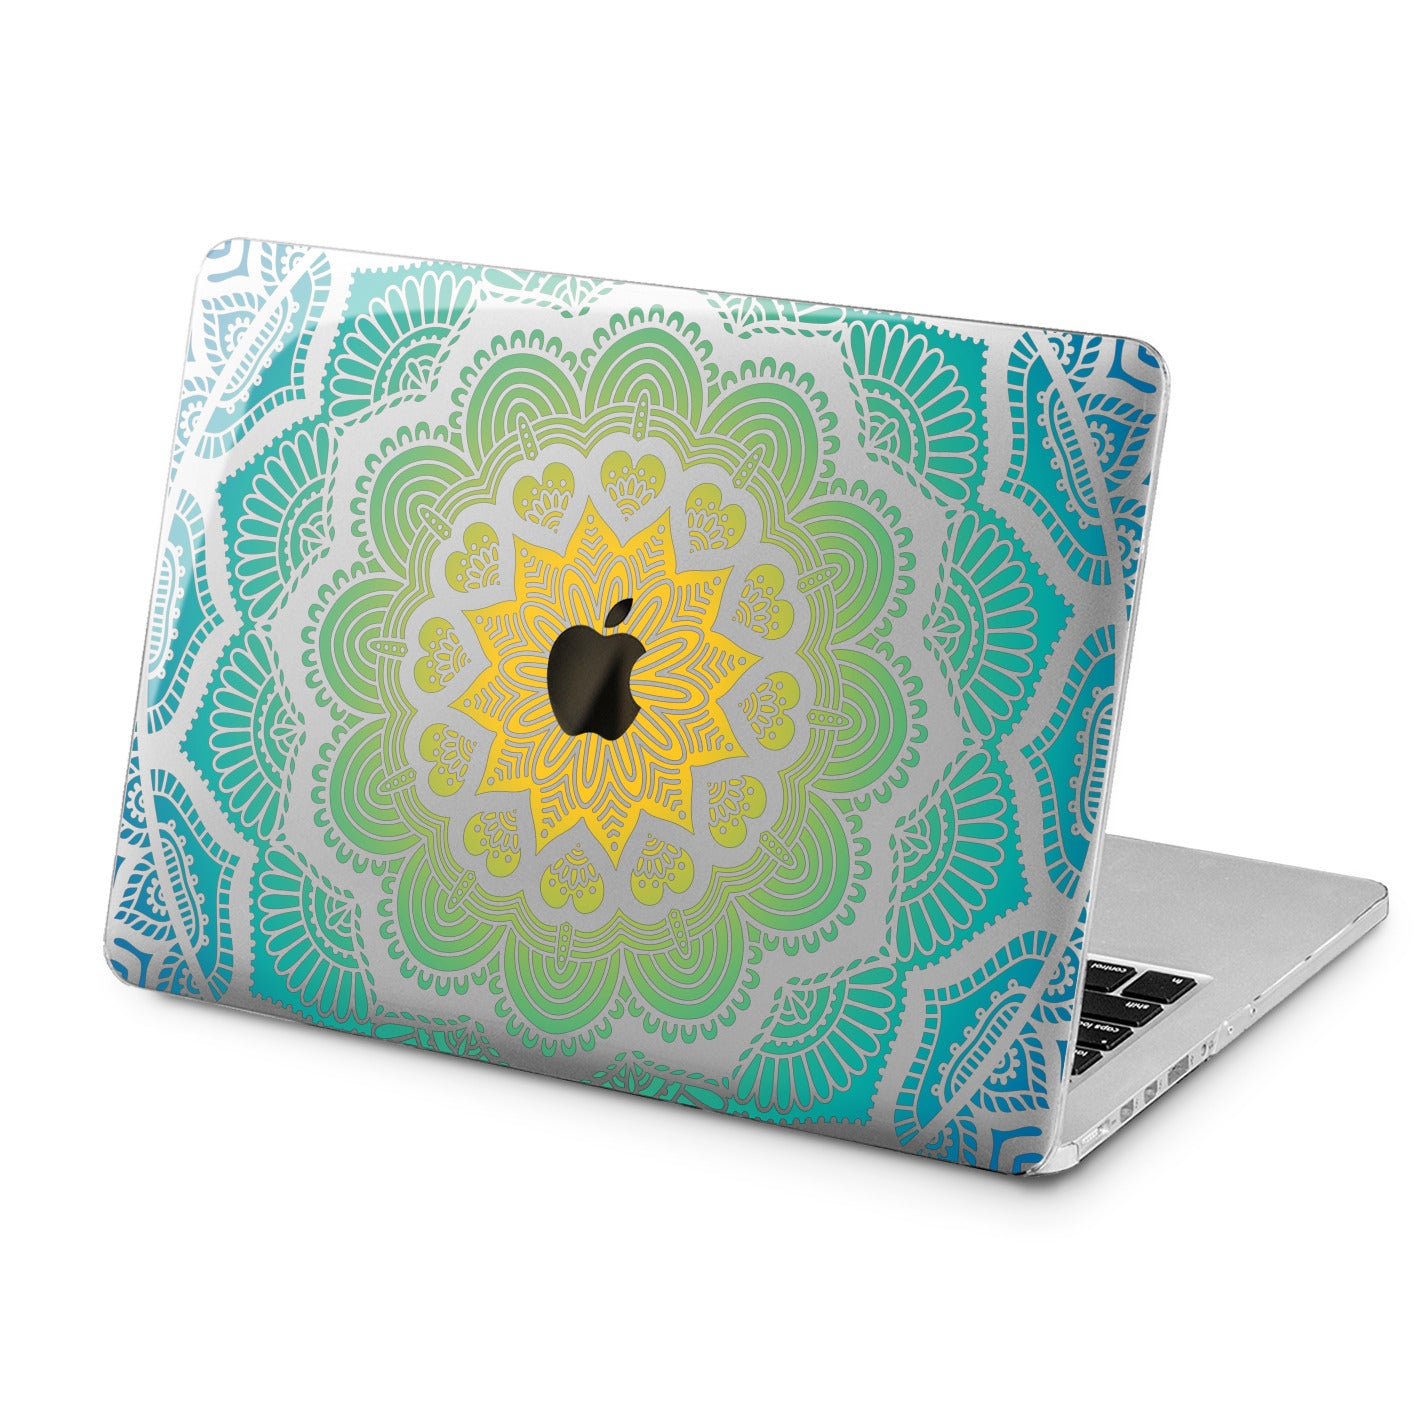 Lex Altern Lex Altern Green Mandala Case for your Laptop Apple Macbook.